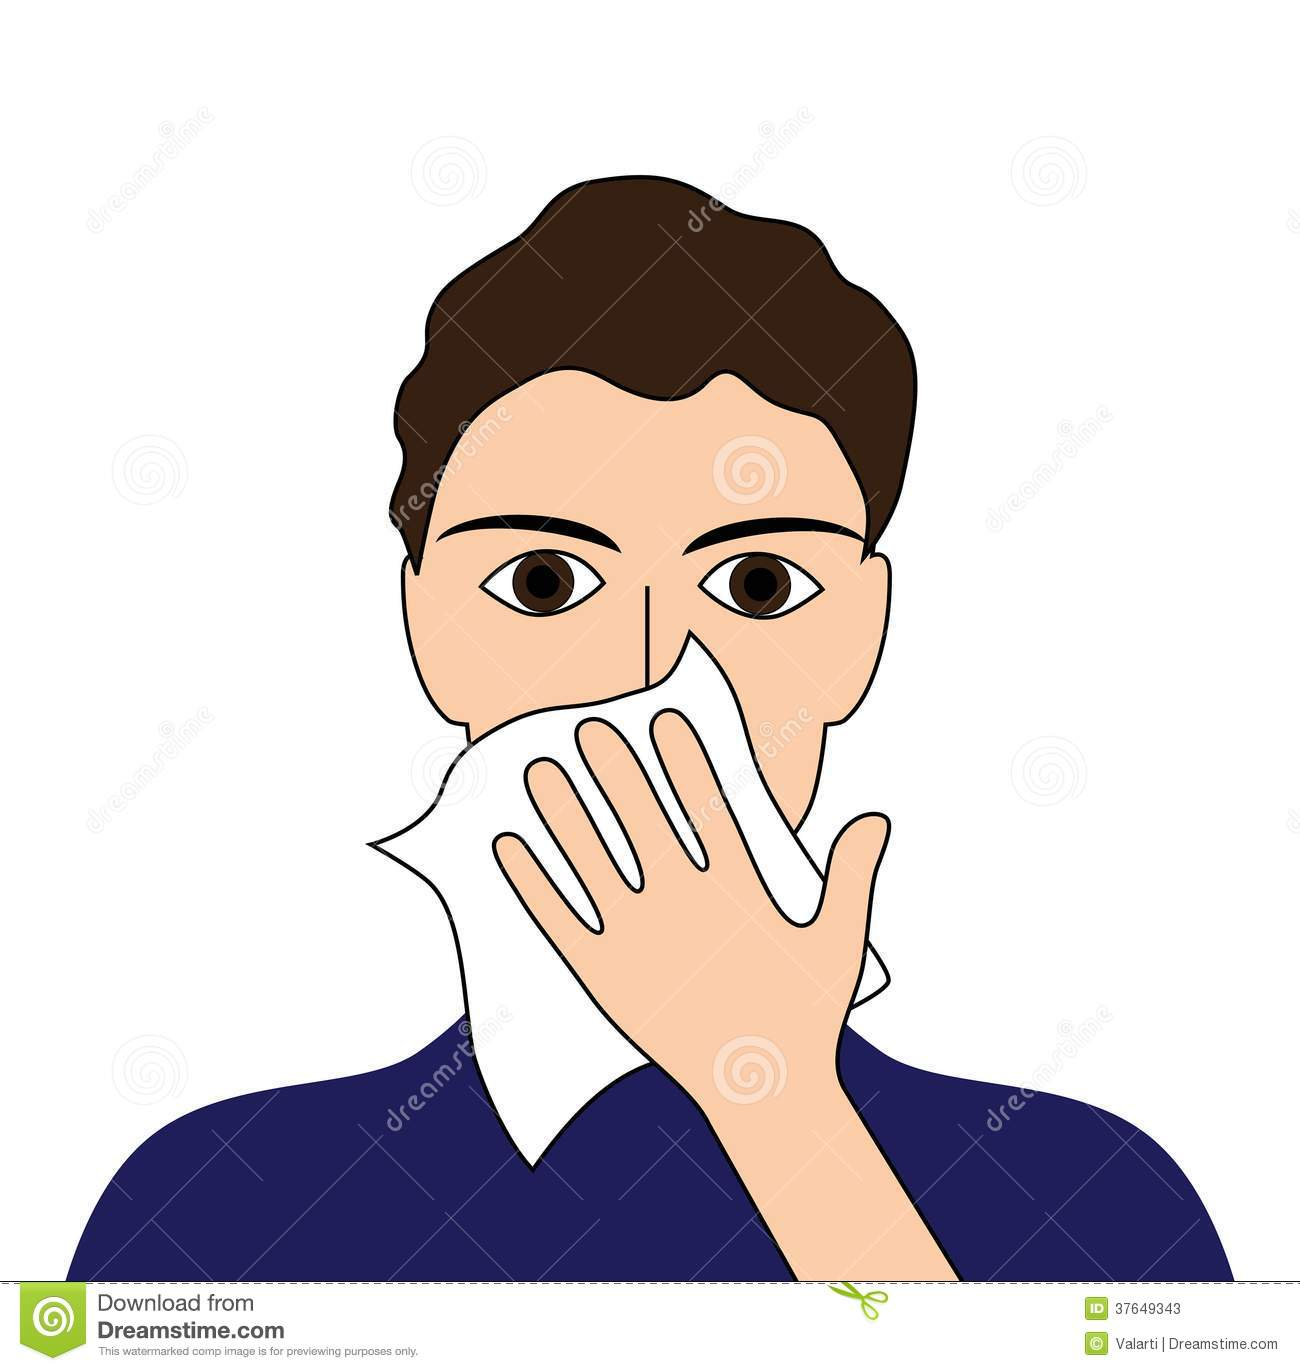 Related Image With Cover Your Cough Clip Art